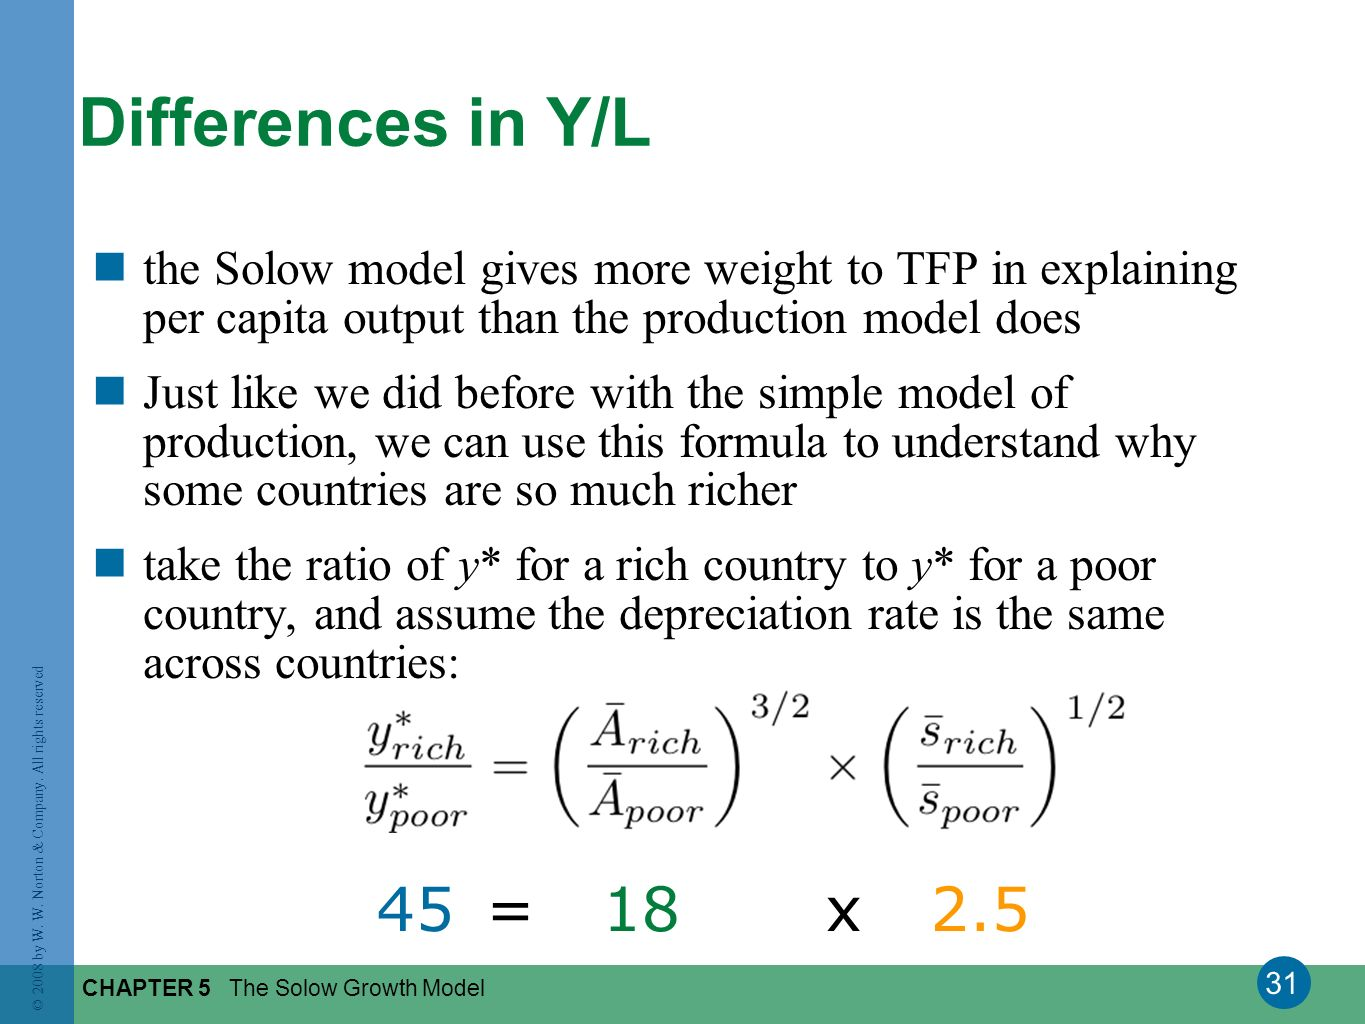 Differences in Y/L the Solow model gives more weight to TFP in explaining per capita output than the production model does.